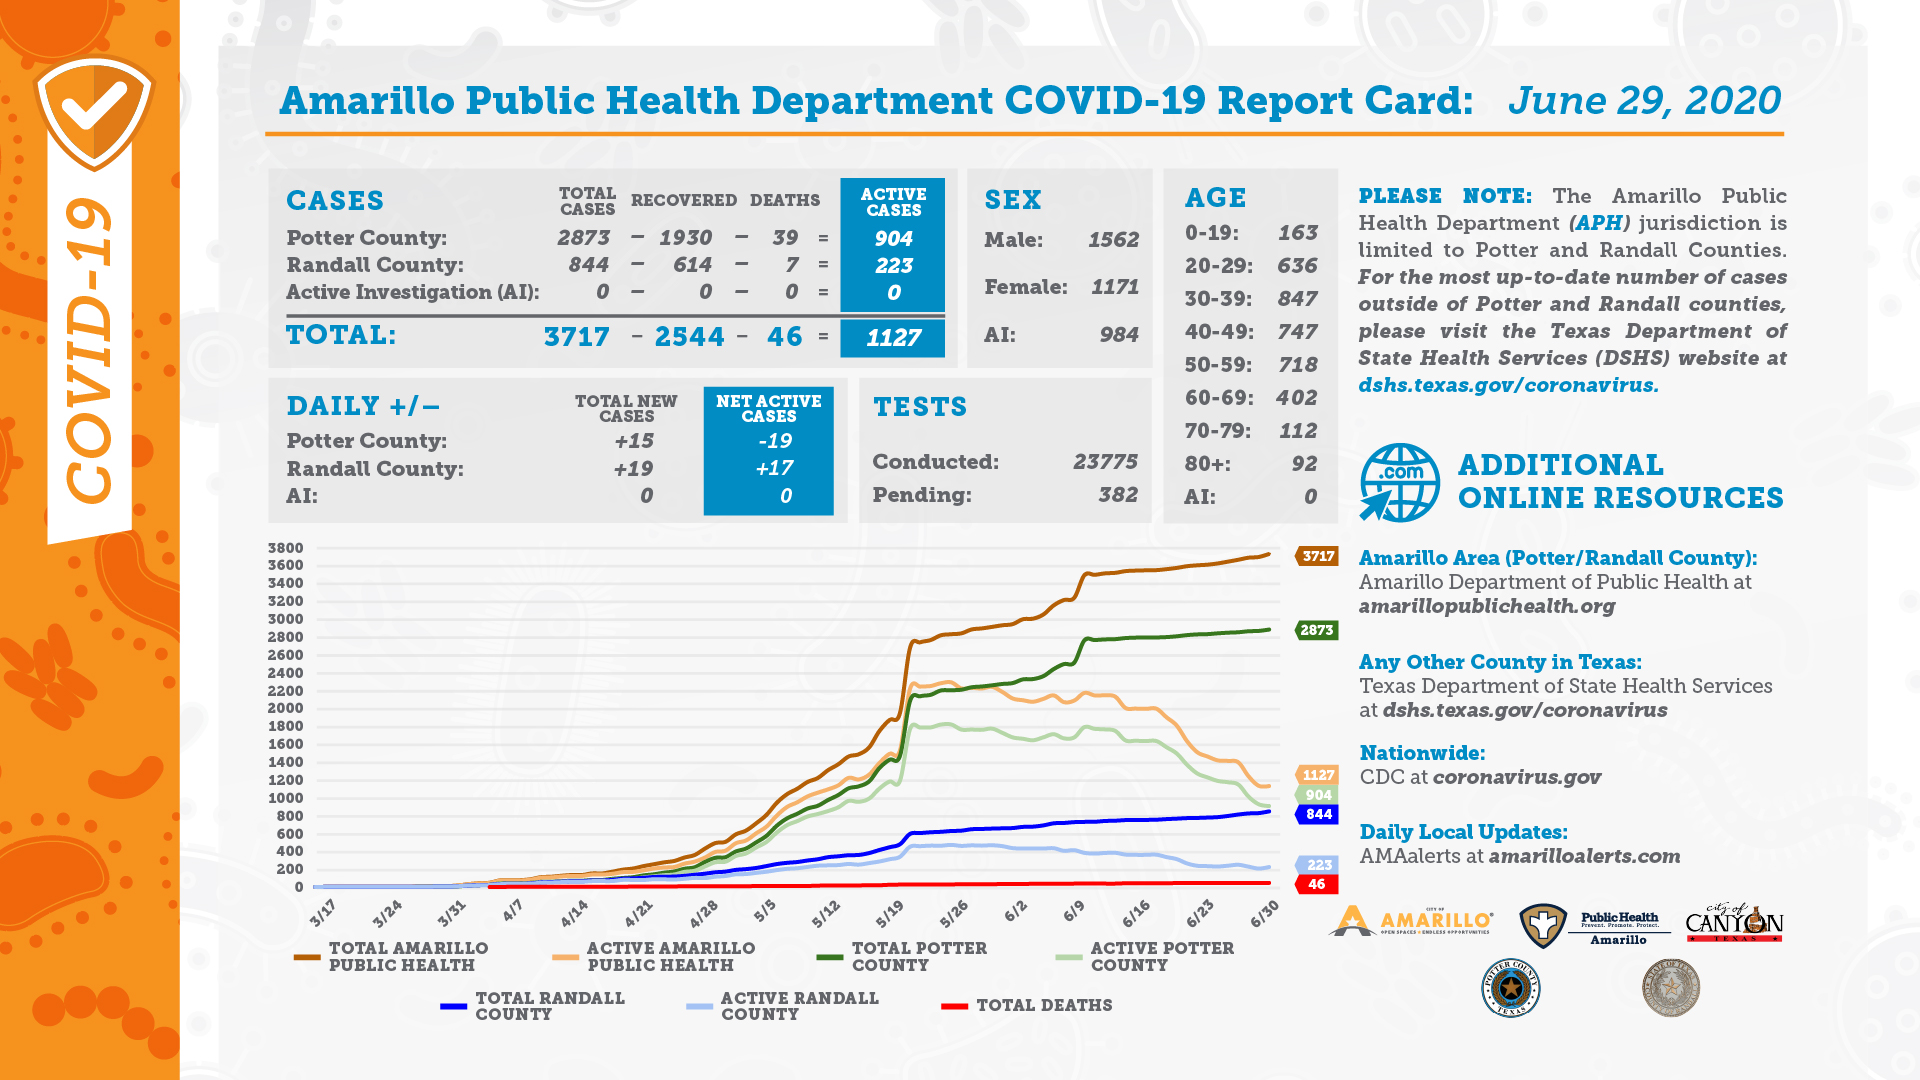 DAILY REPORT CARD 06 29 2020